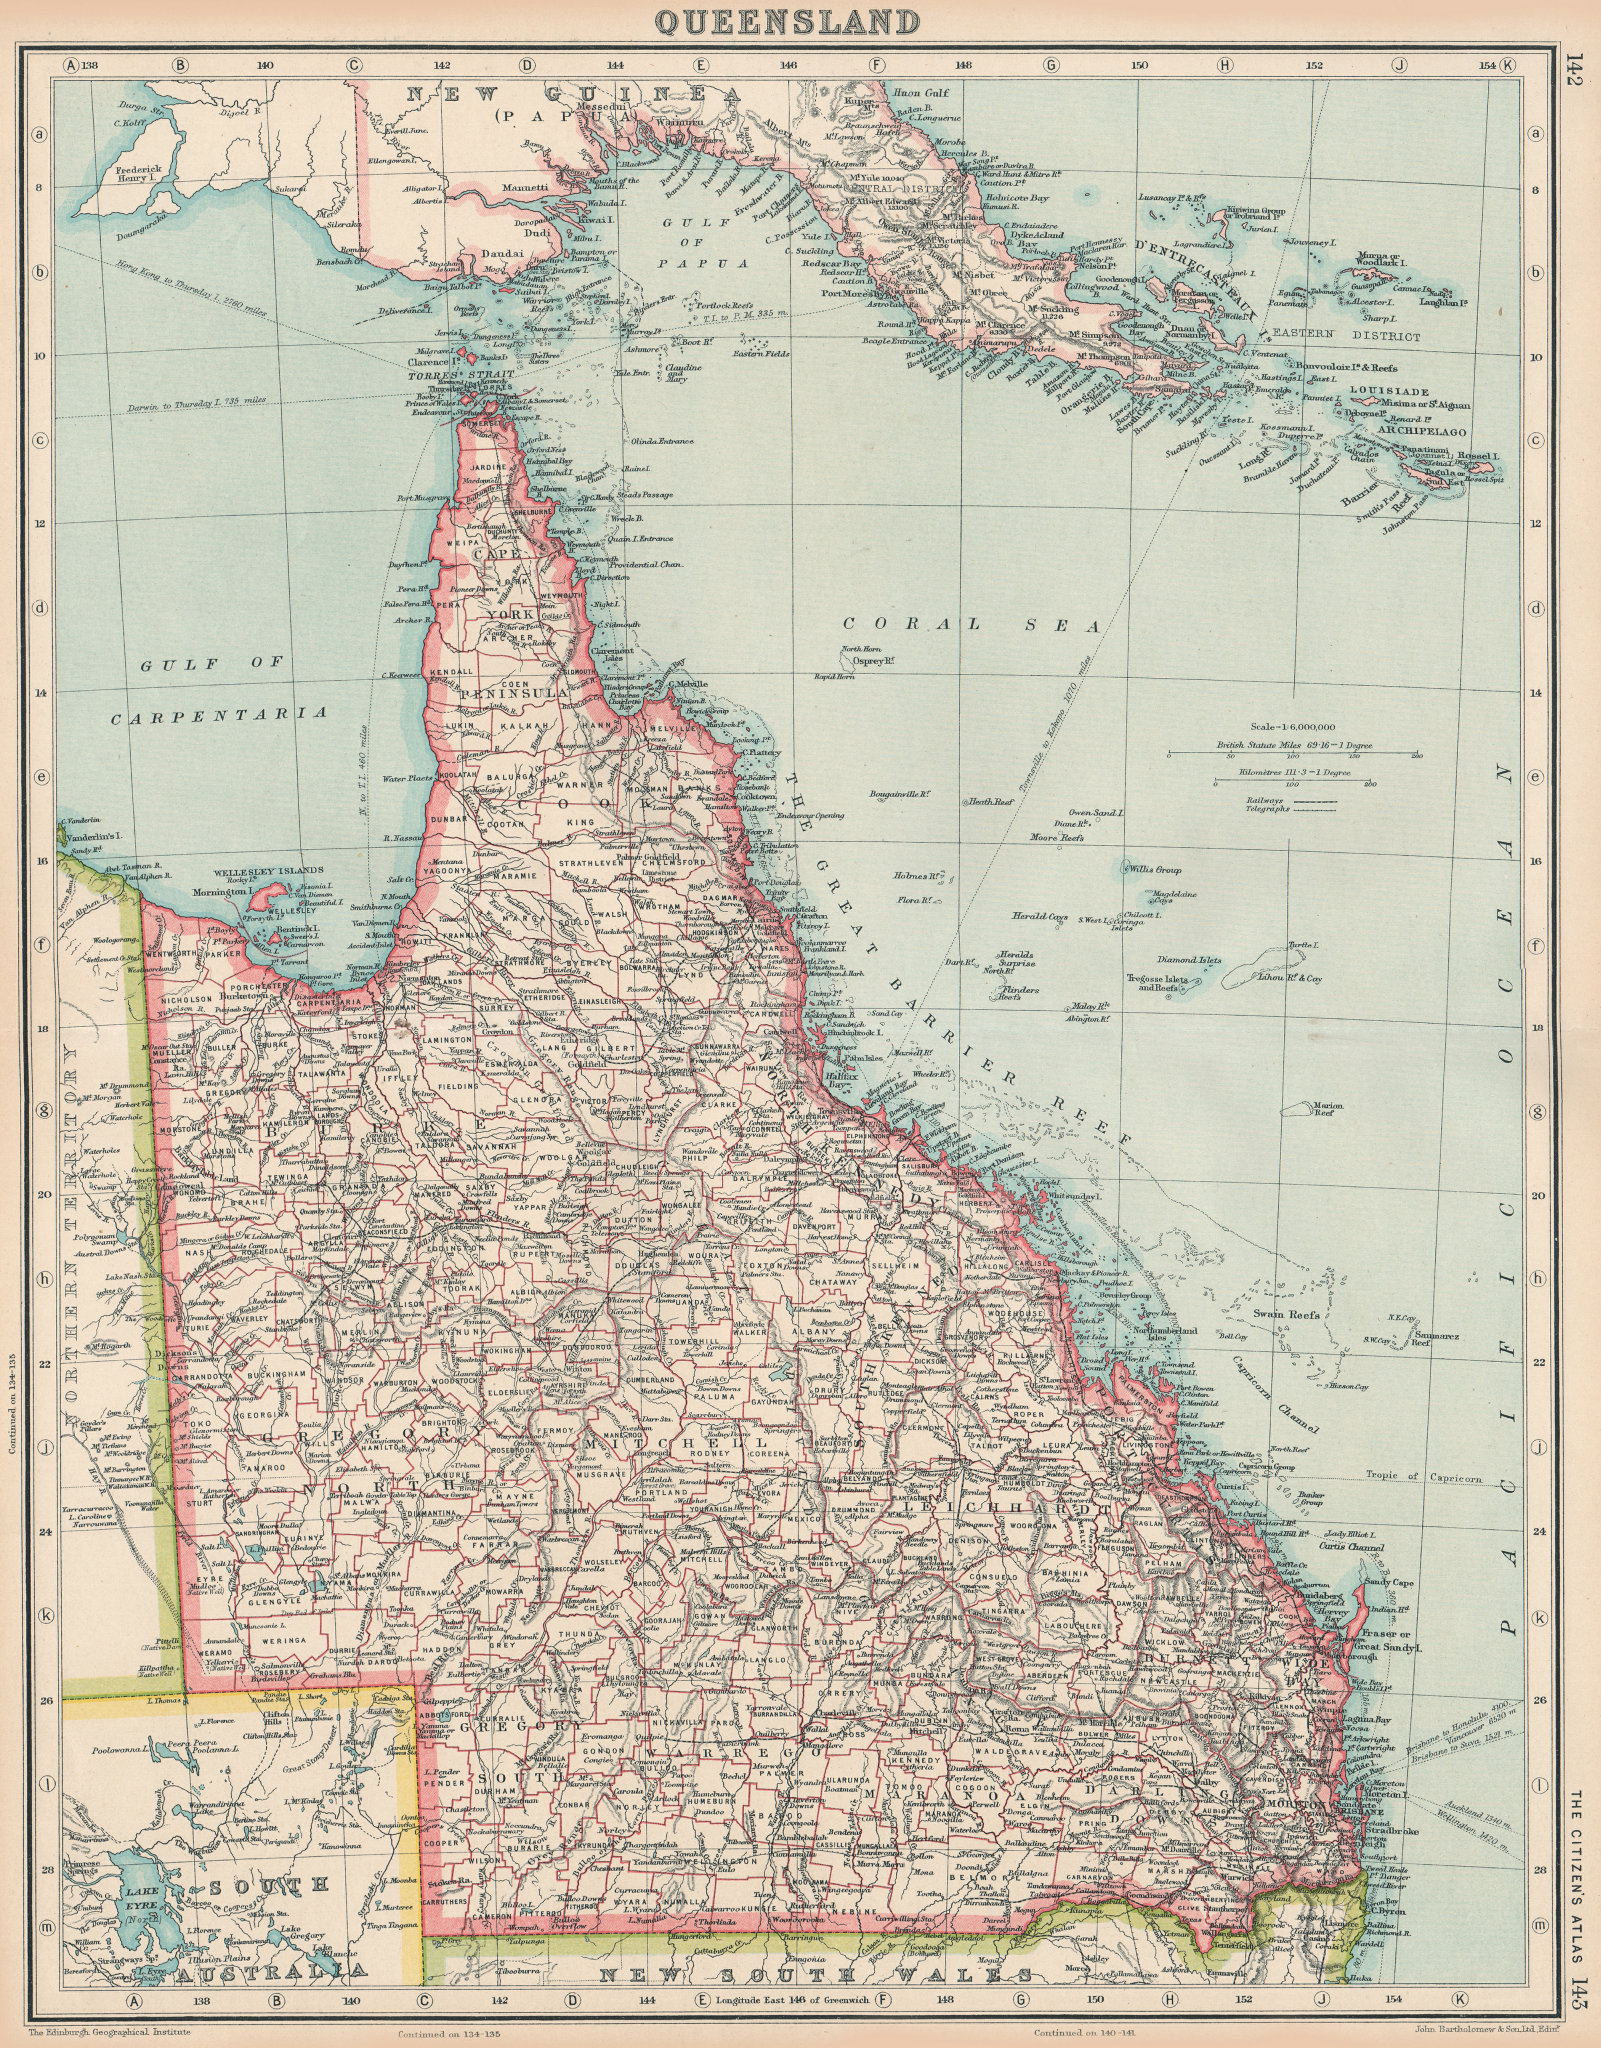 Associate Product QUEENSLAND. State map showing counties. Australia. BARTHOLOMEW 1924 old